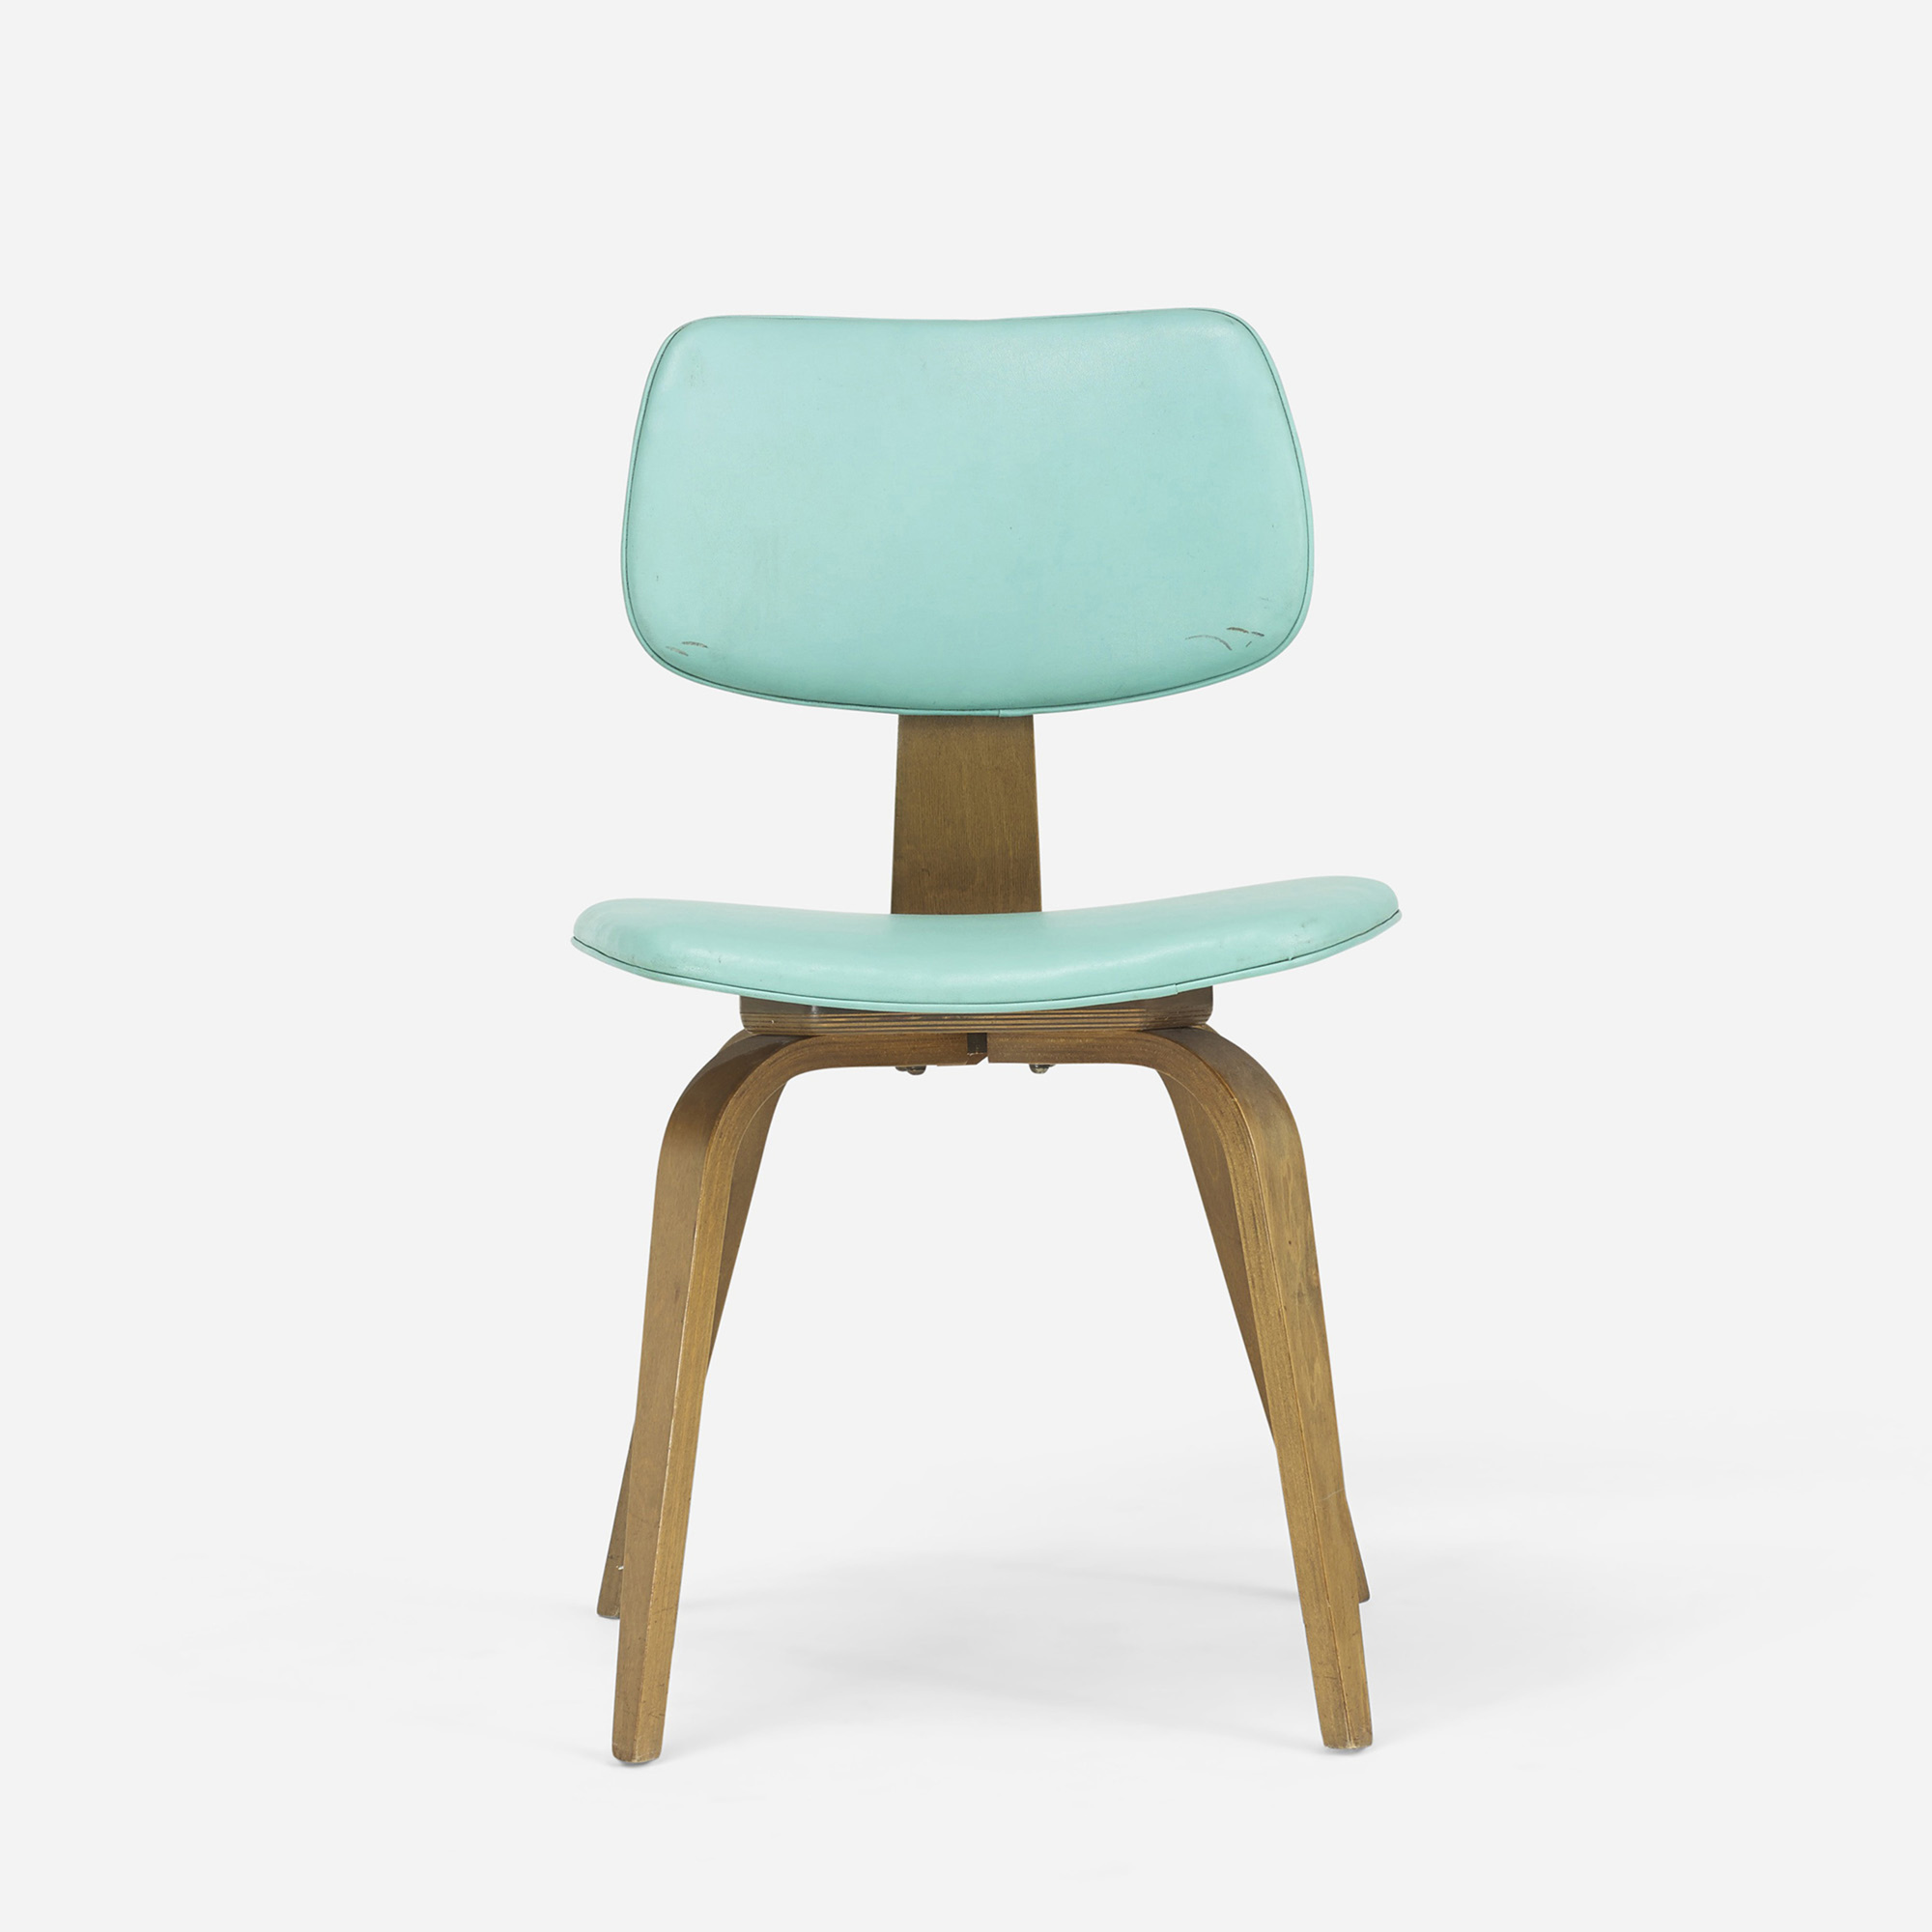 110 Thonet Side Chair 2 Of 4